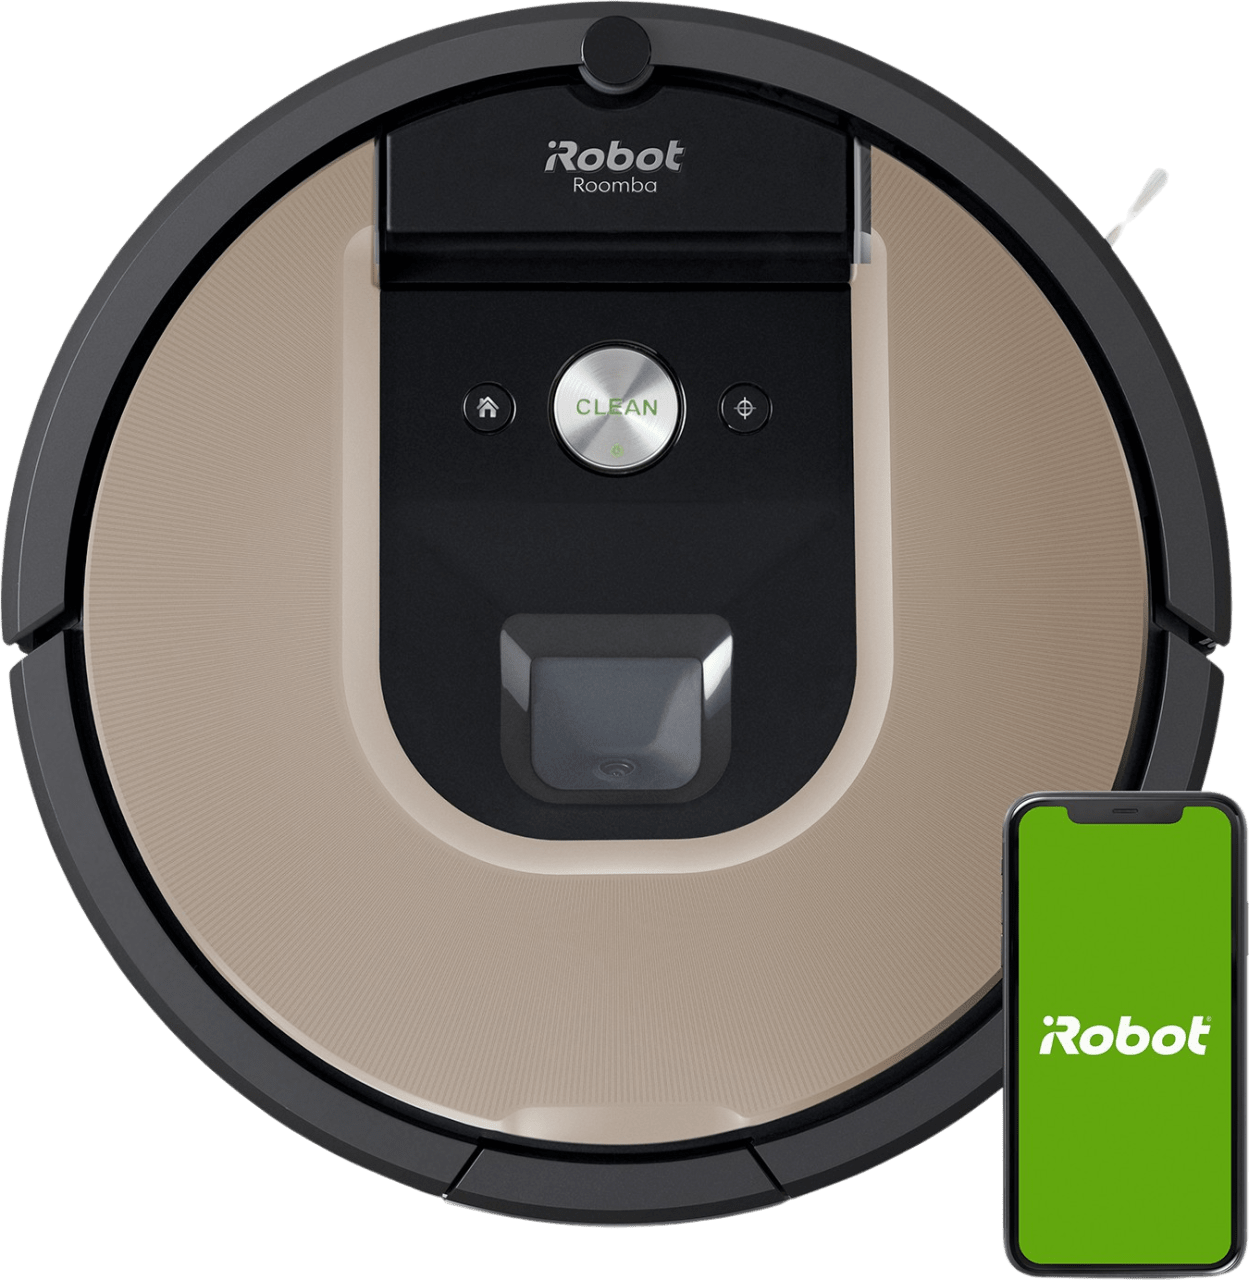 White iRobot Roomba 966 Vacuum Cleaner Robot.1